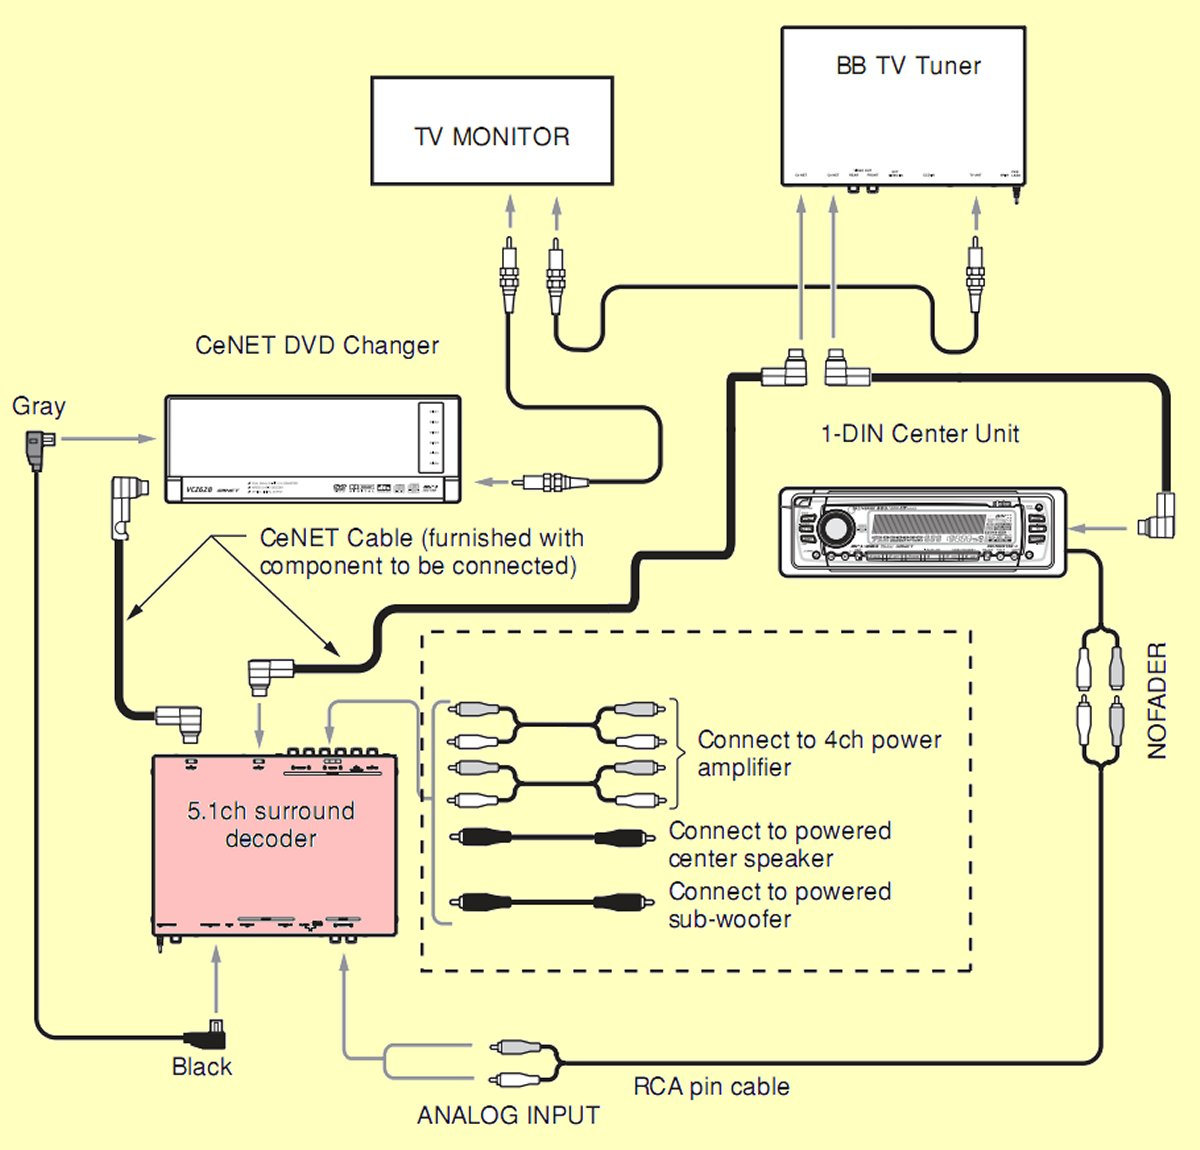 Wiring Diagram For Clarion Car Stereo Marine Radio Free Download Cadillac Seat